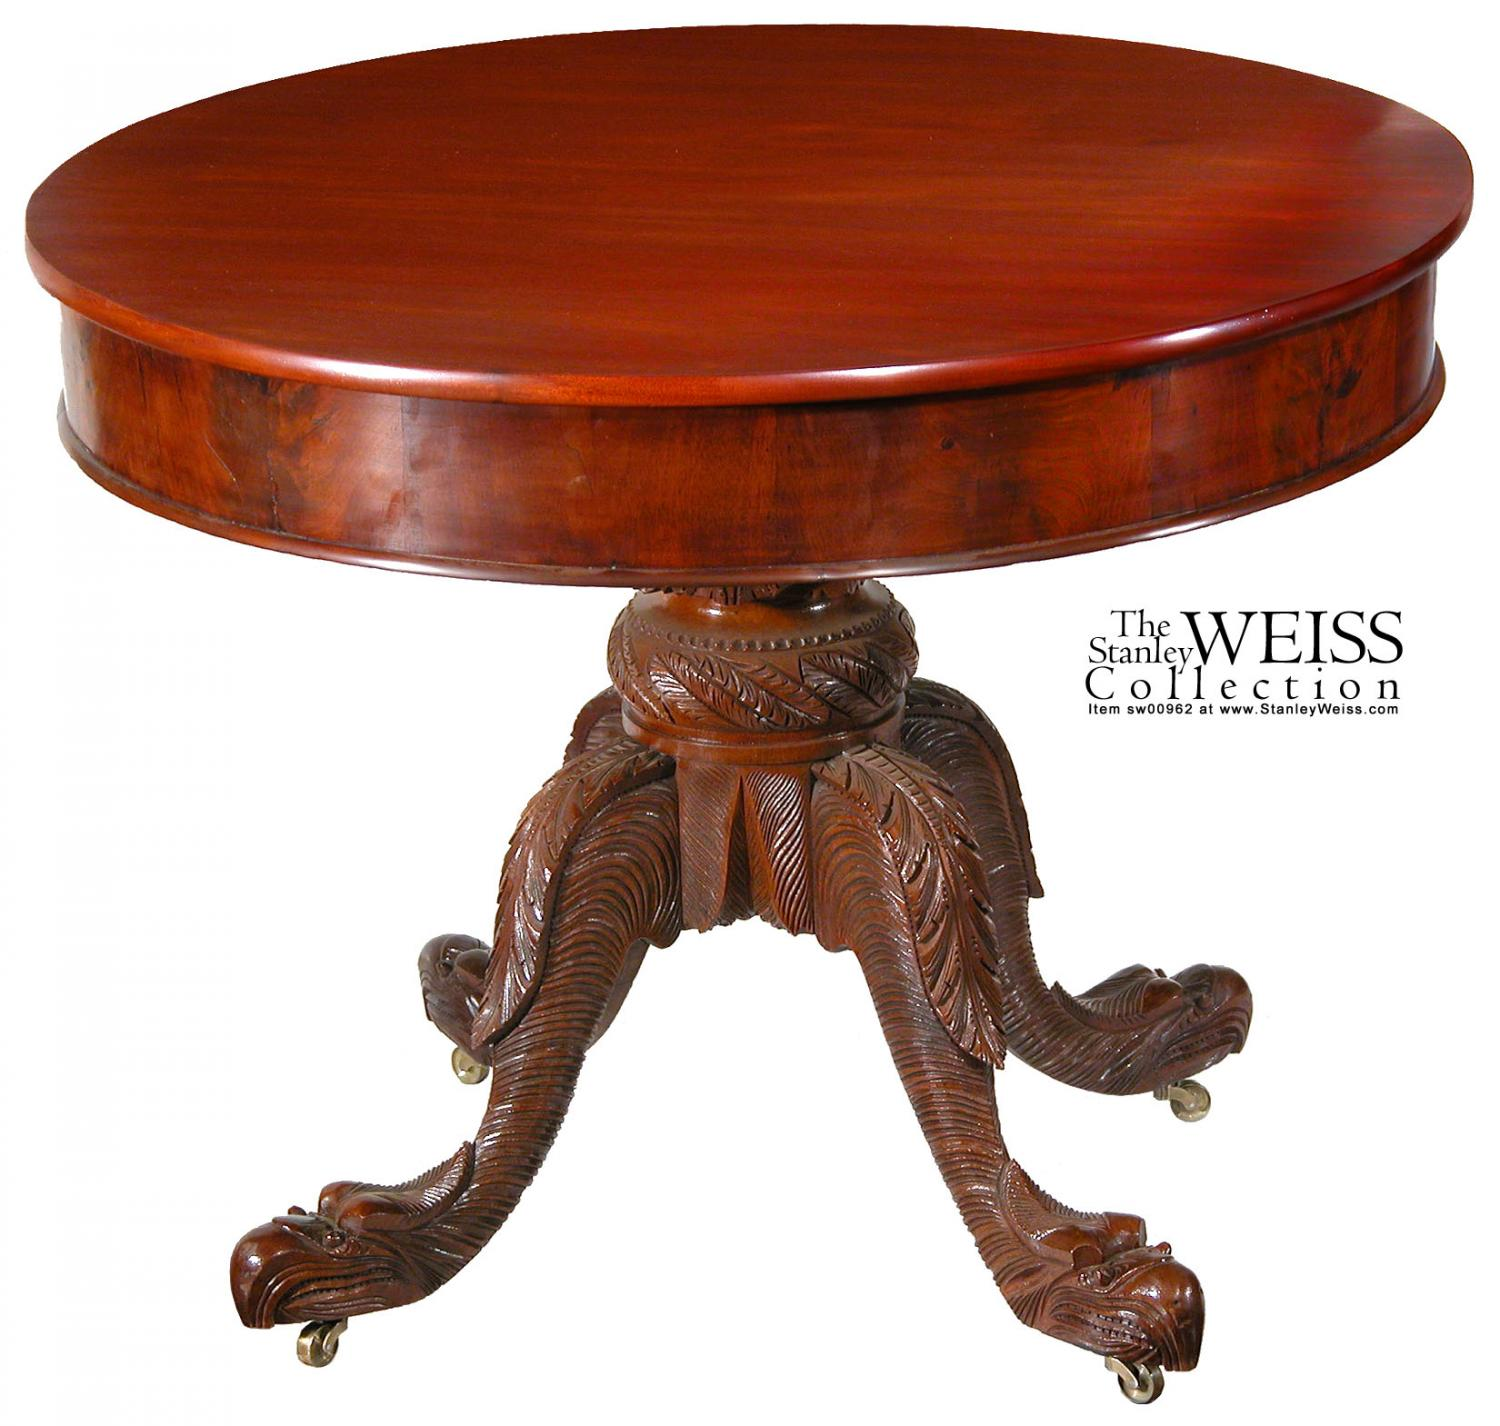 A Carved Mahogany Classical Center Table, Albany, NY c.1830-40, attributed  to Amariah T. Prouty, from the George A. Cluett Collection - A Carved Mahogany Classical Center Table, Albany, NY C.1830-40